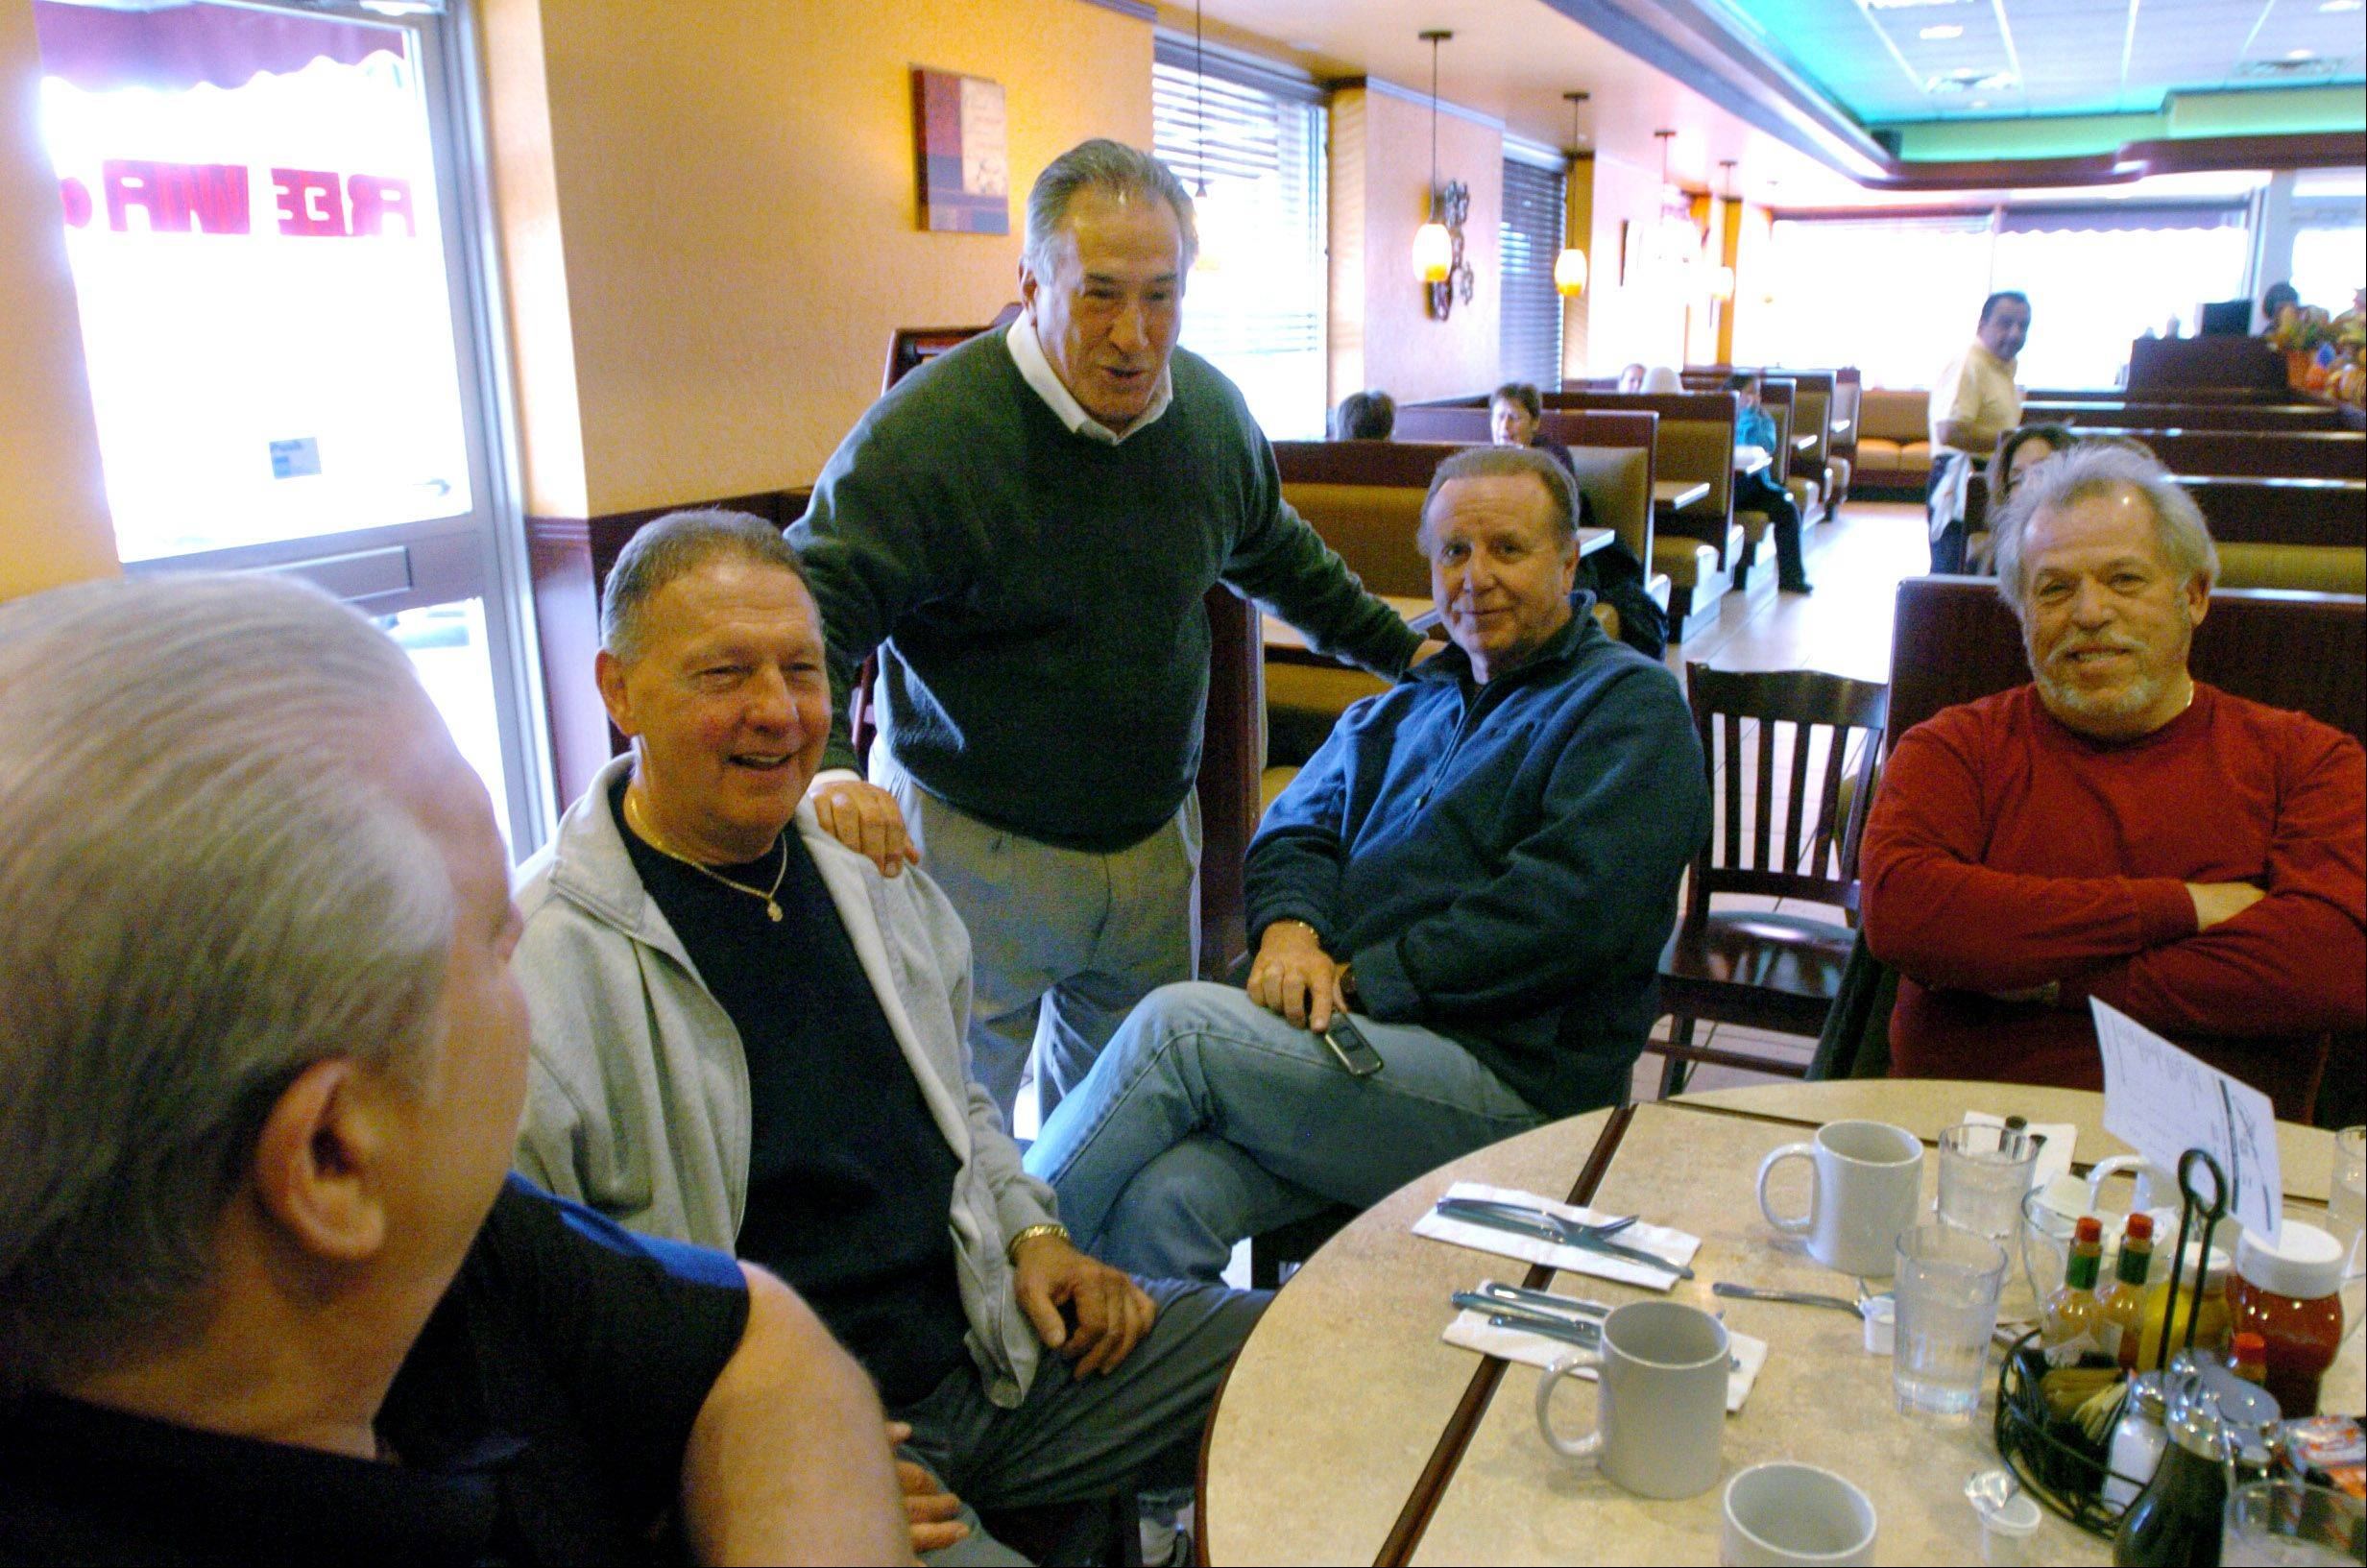 Des Plaines Mayor Marty Moylan thanks, from left, Bill Schaefer, Charlie Molnar, George Ruckrich and Bill Hanhardt for their support while visiting with patrons at the Sugar Bowl restaurant after securing the 55th State House District seat Tuesday.